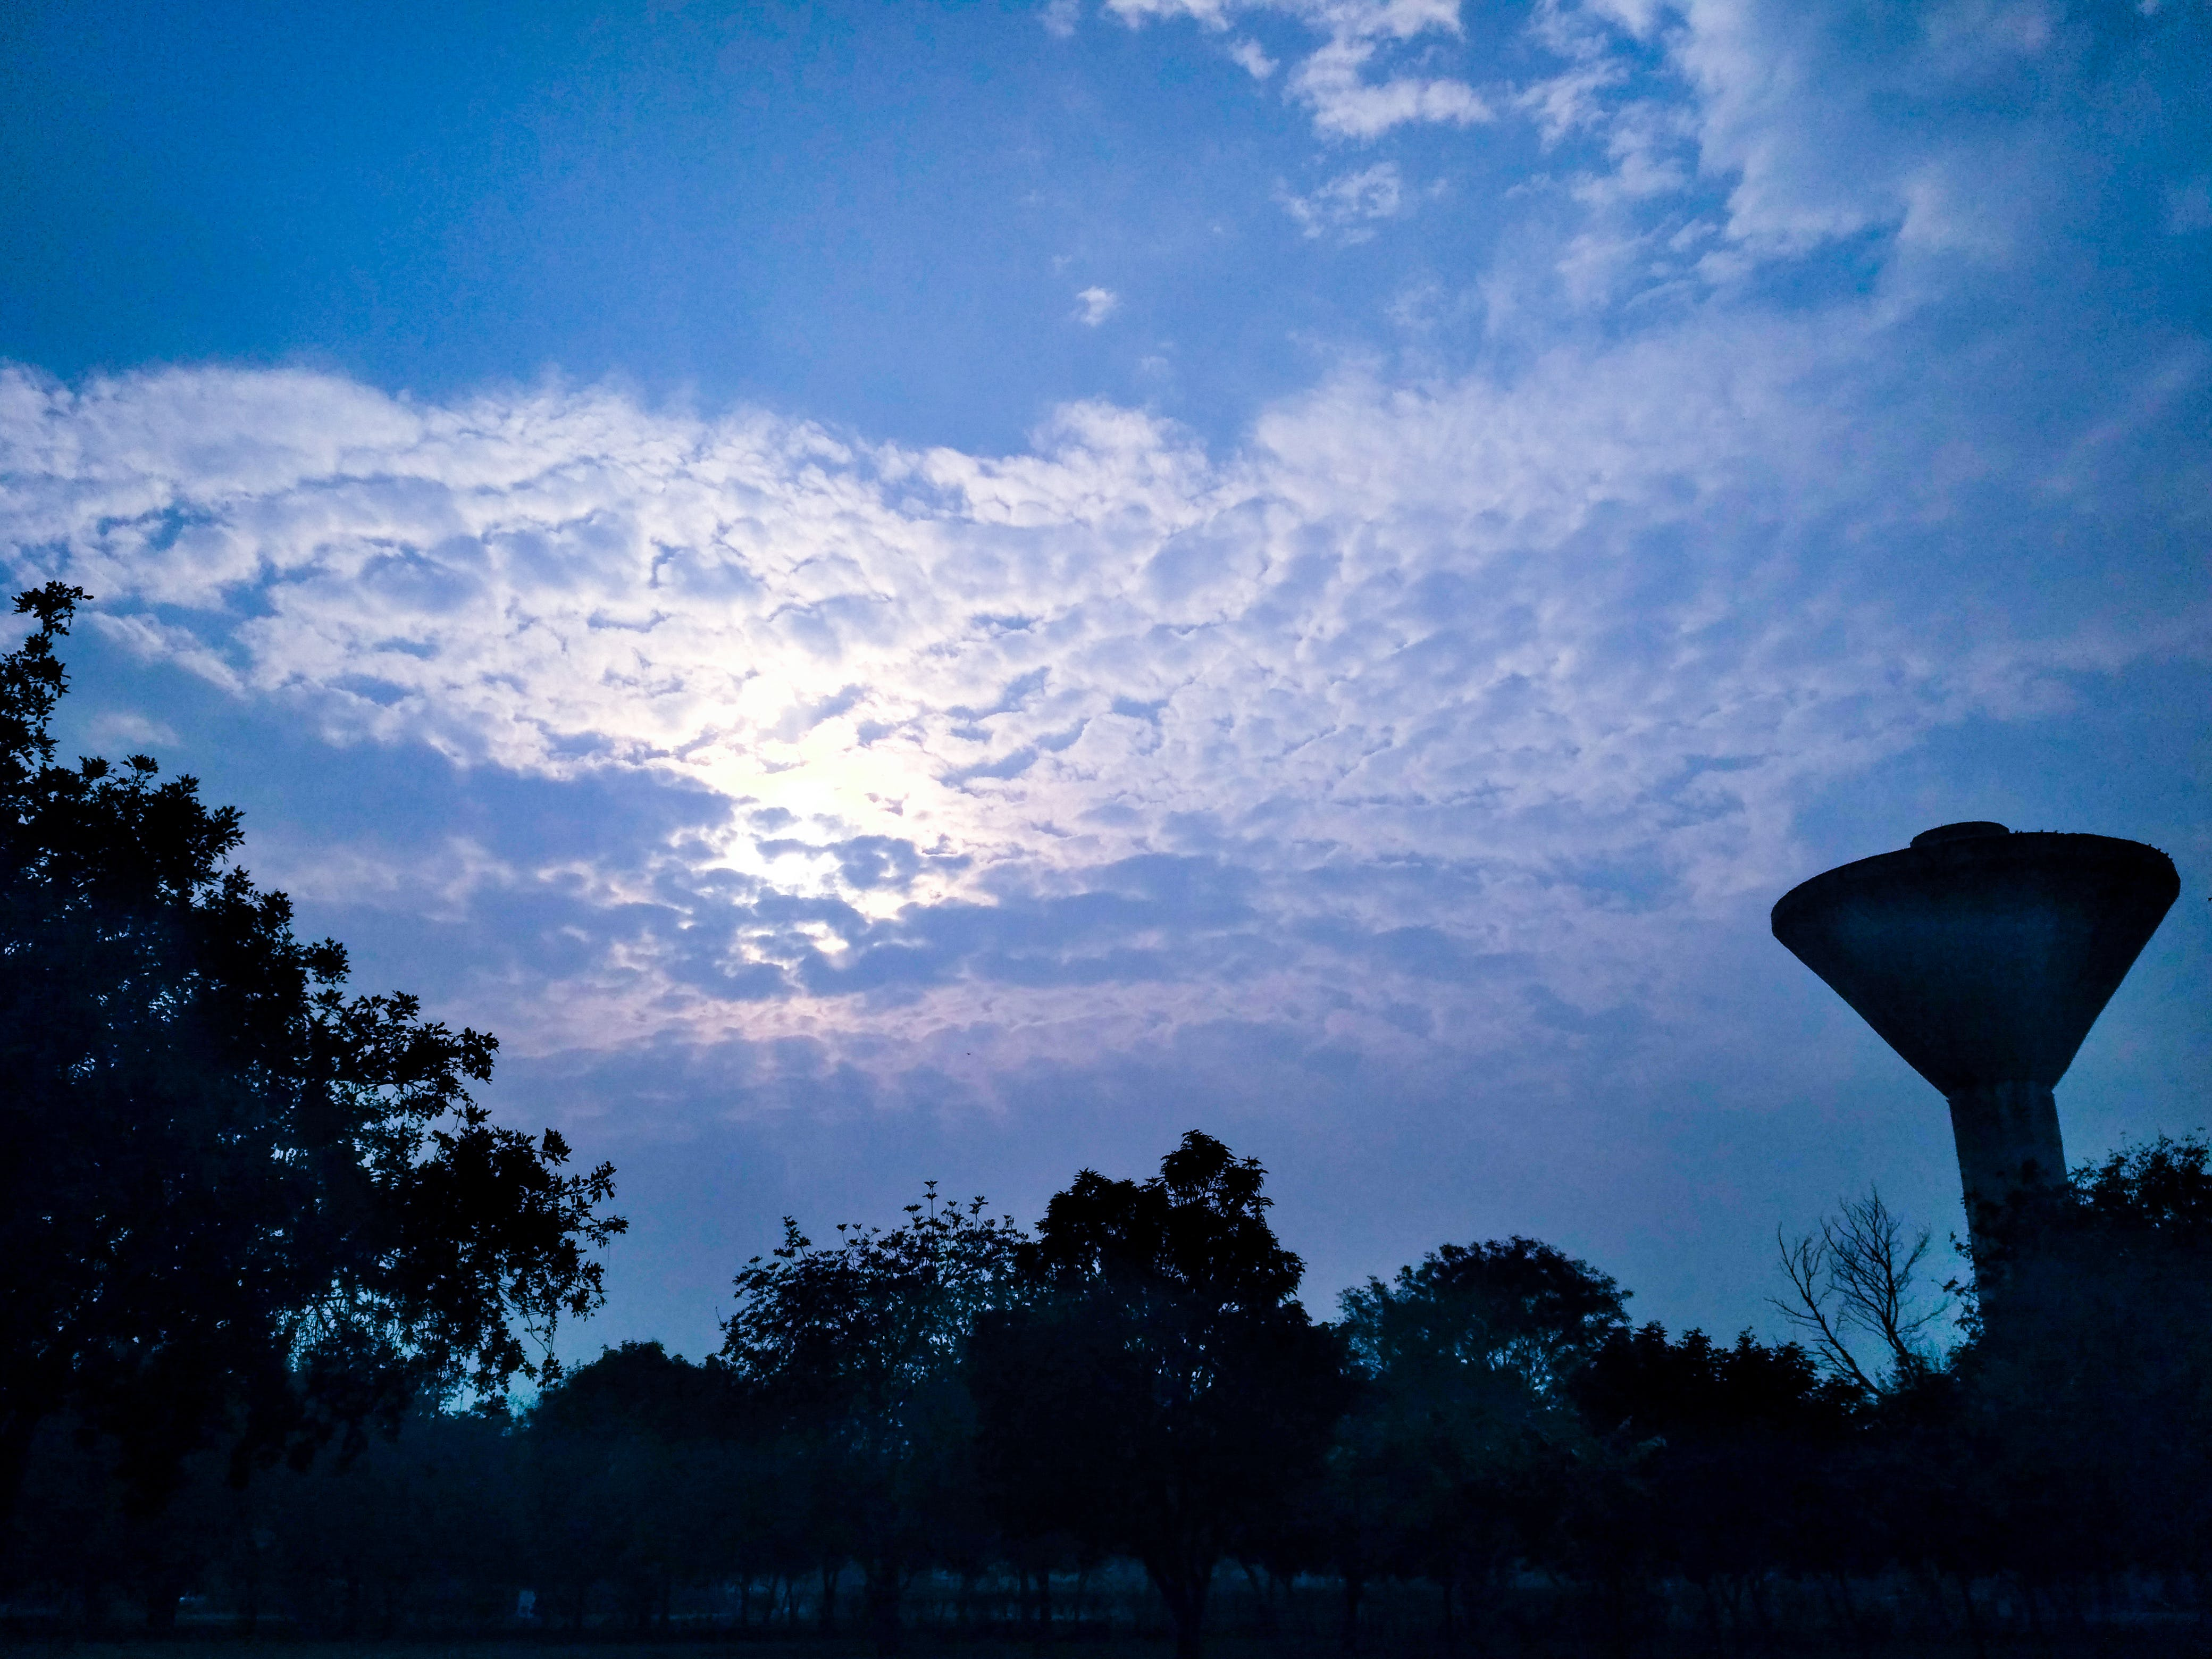 beauty in nature, clouds, natue